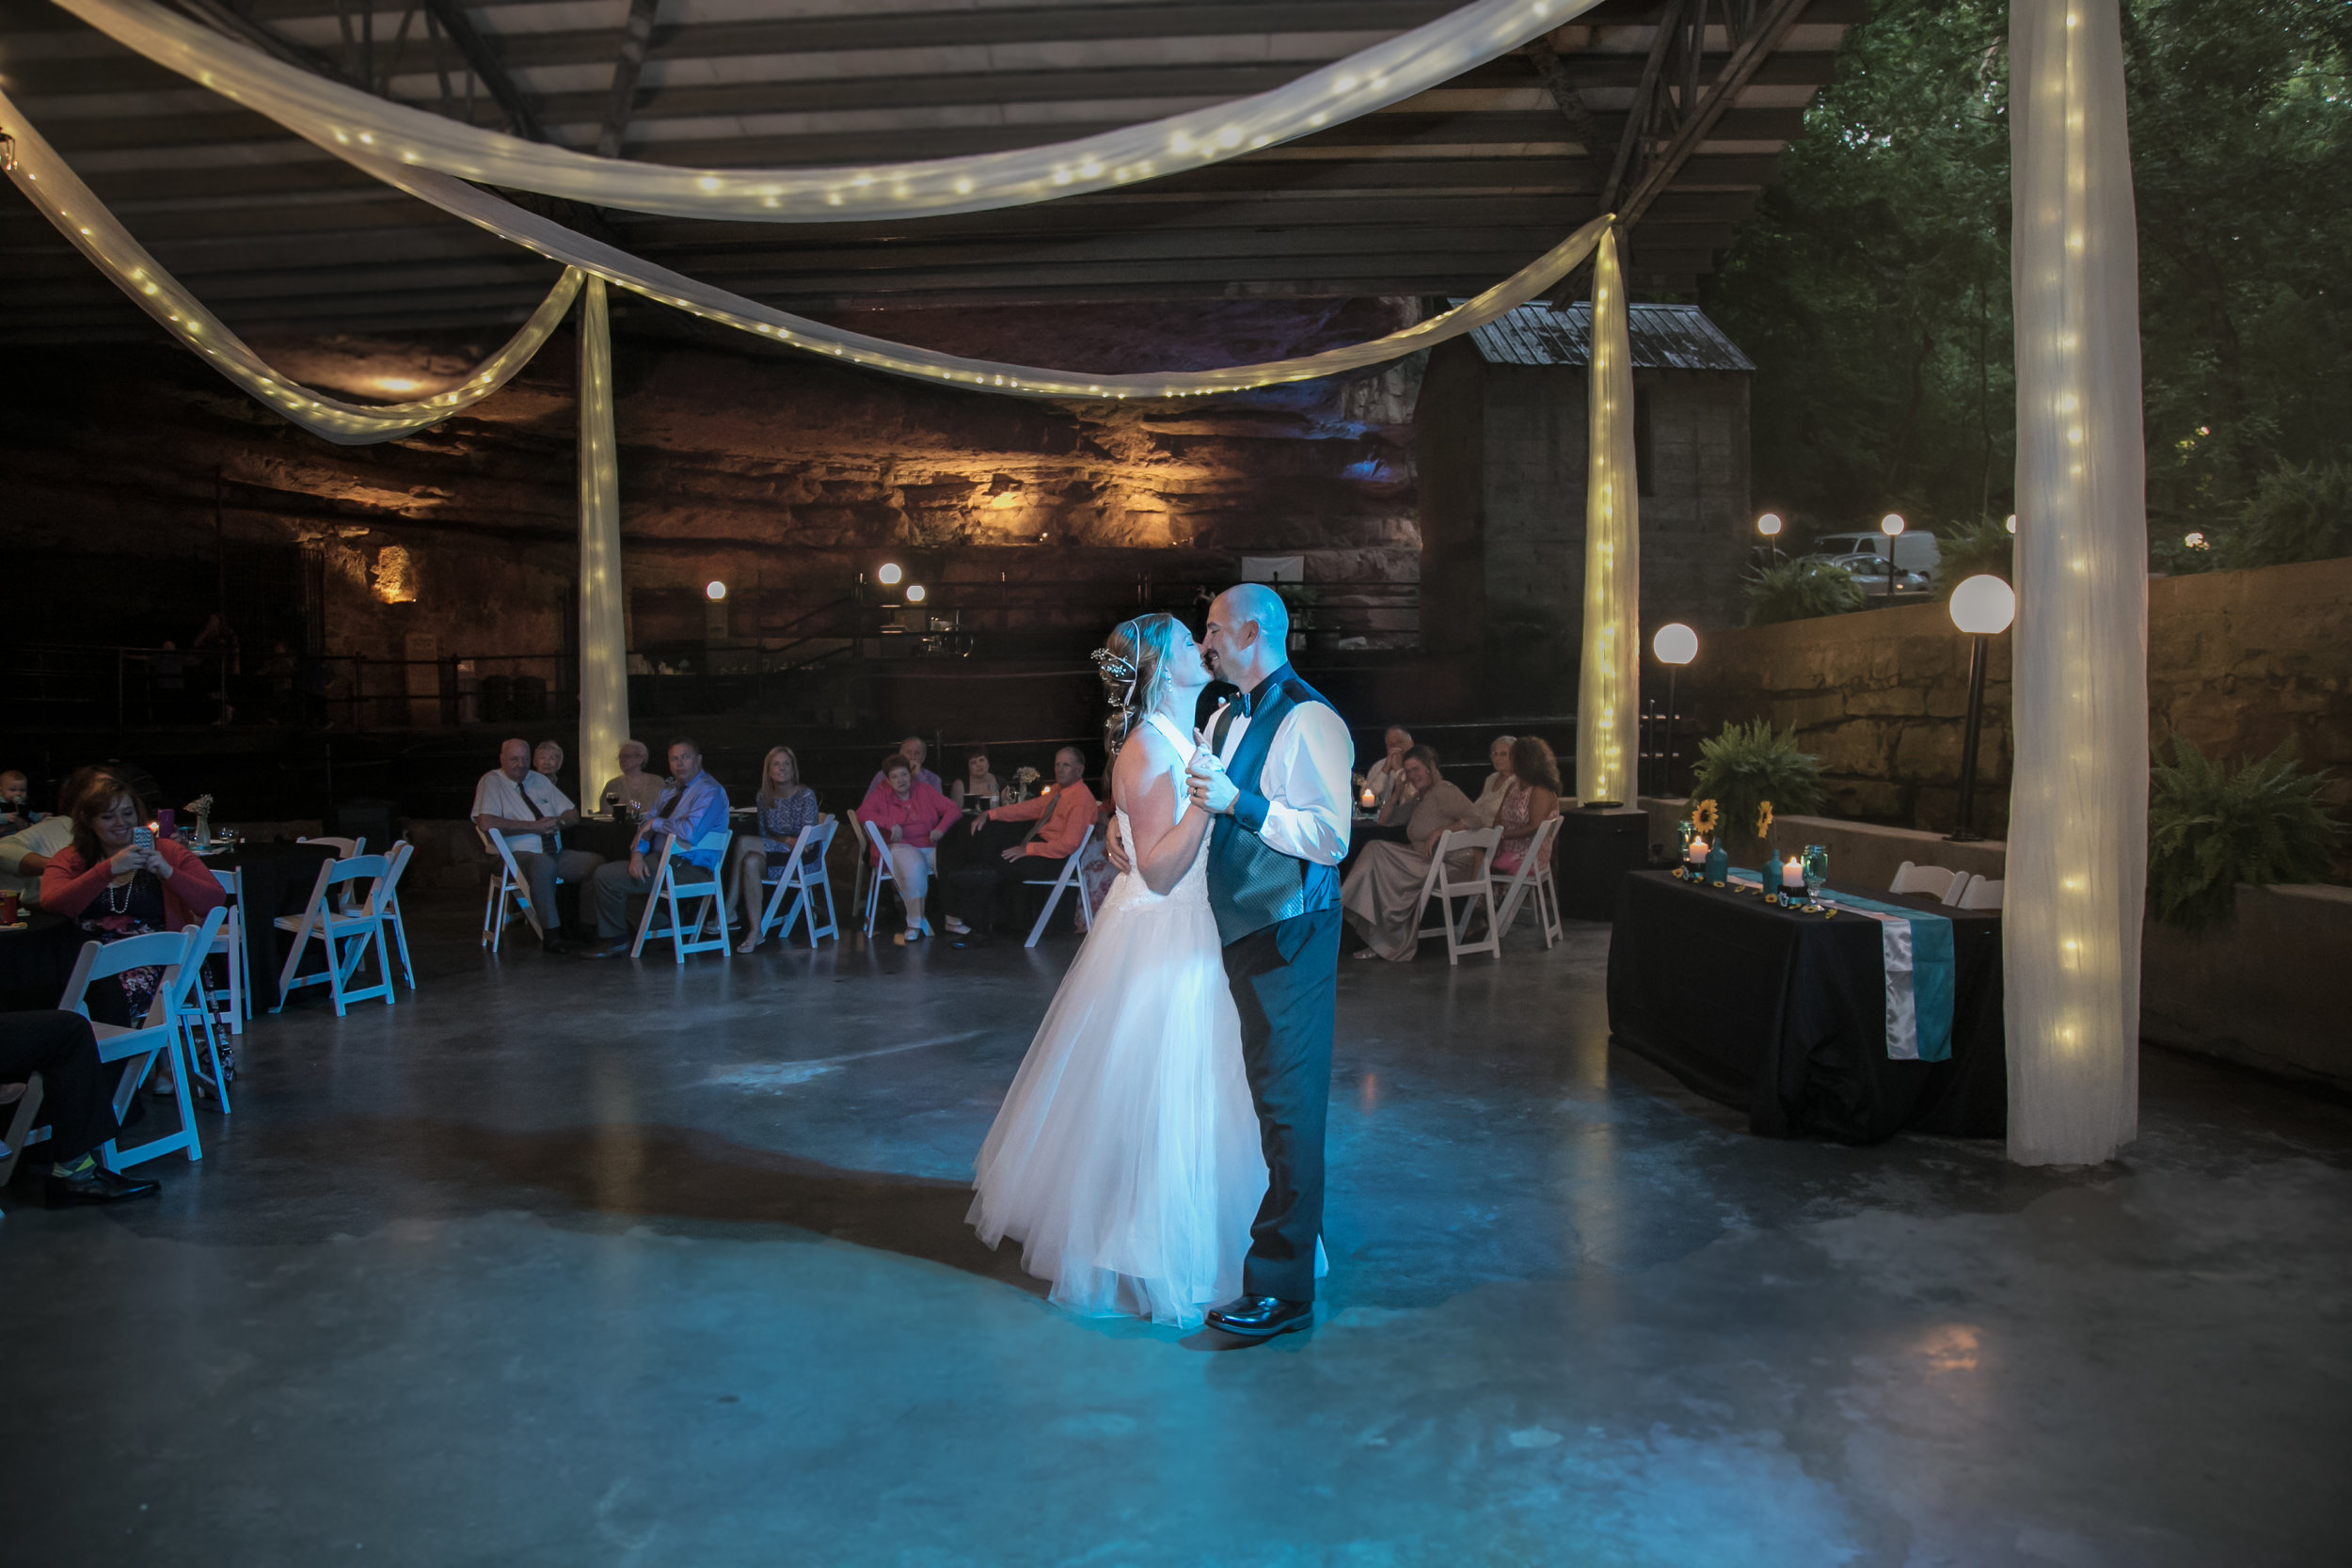 Nashville_Wedding_Photographer_DJ_Lighting_Bowling_Franklin-1.jpg